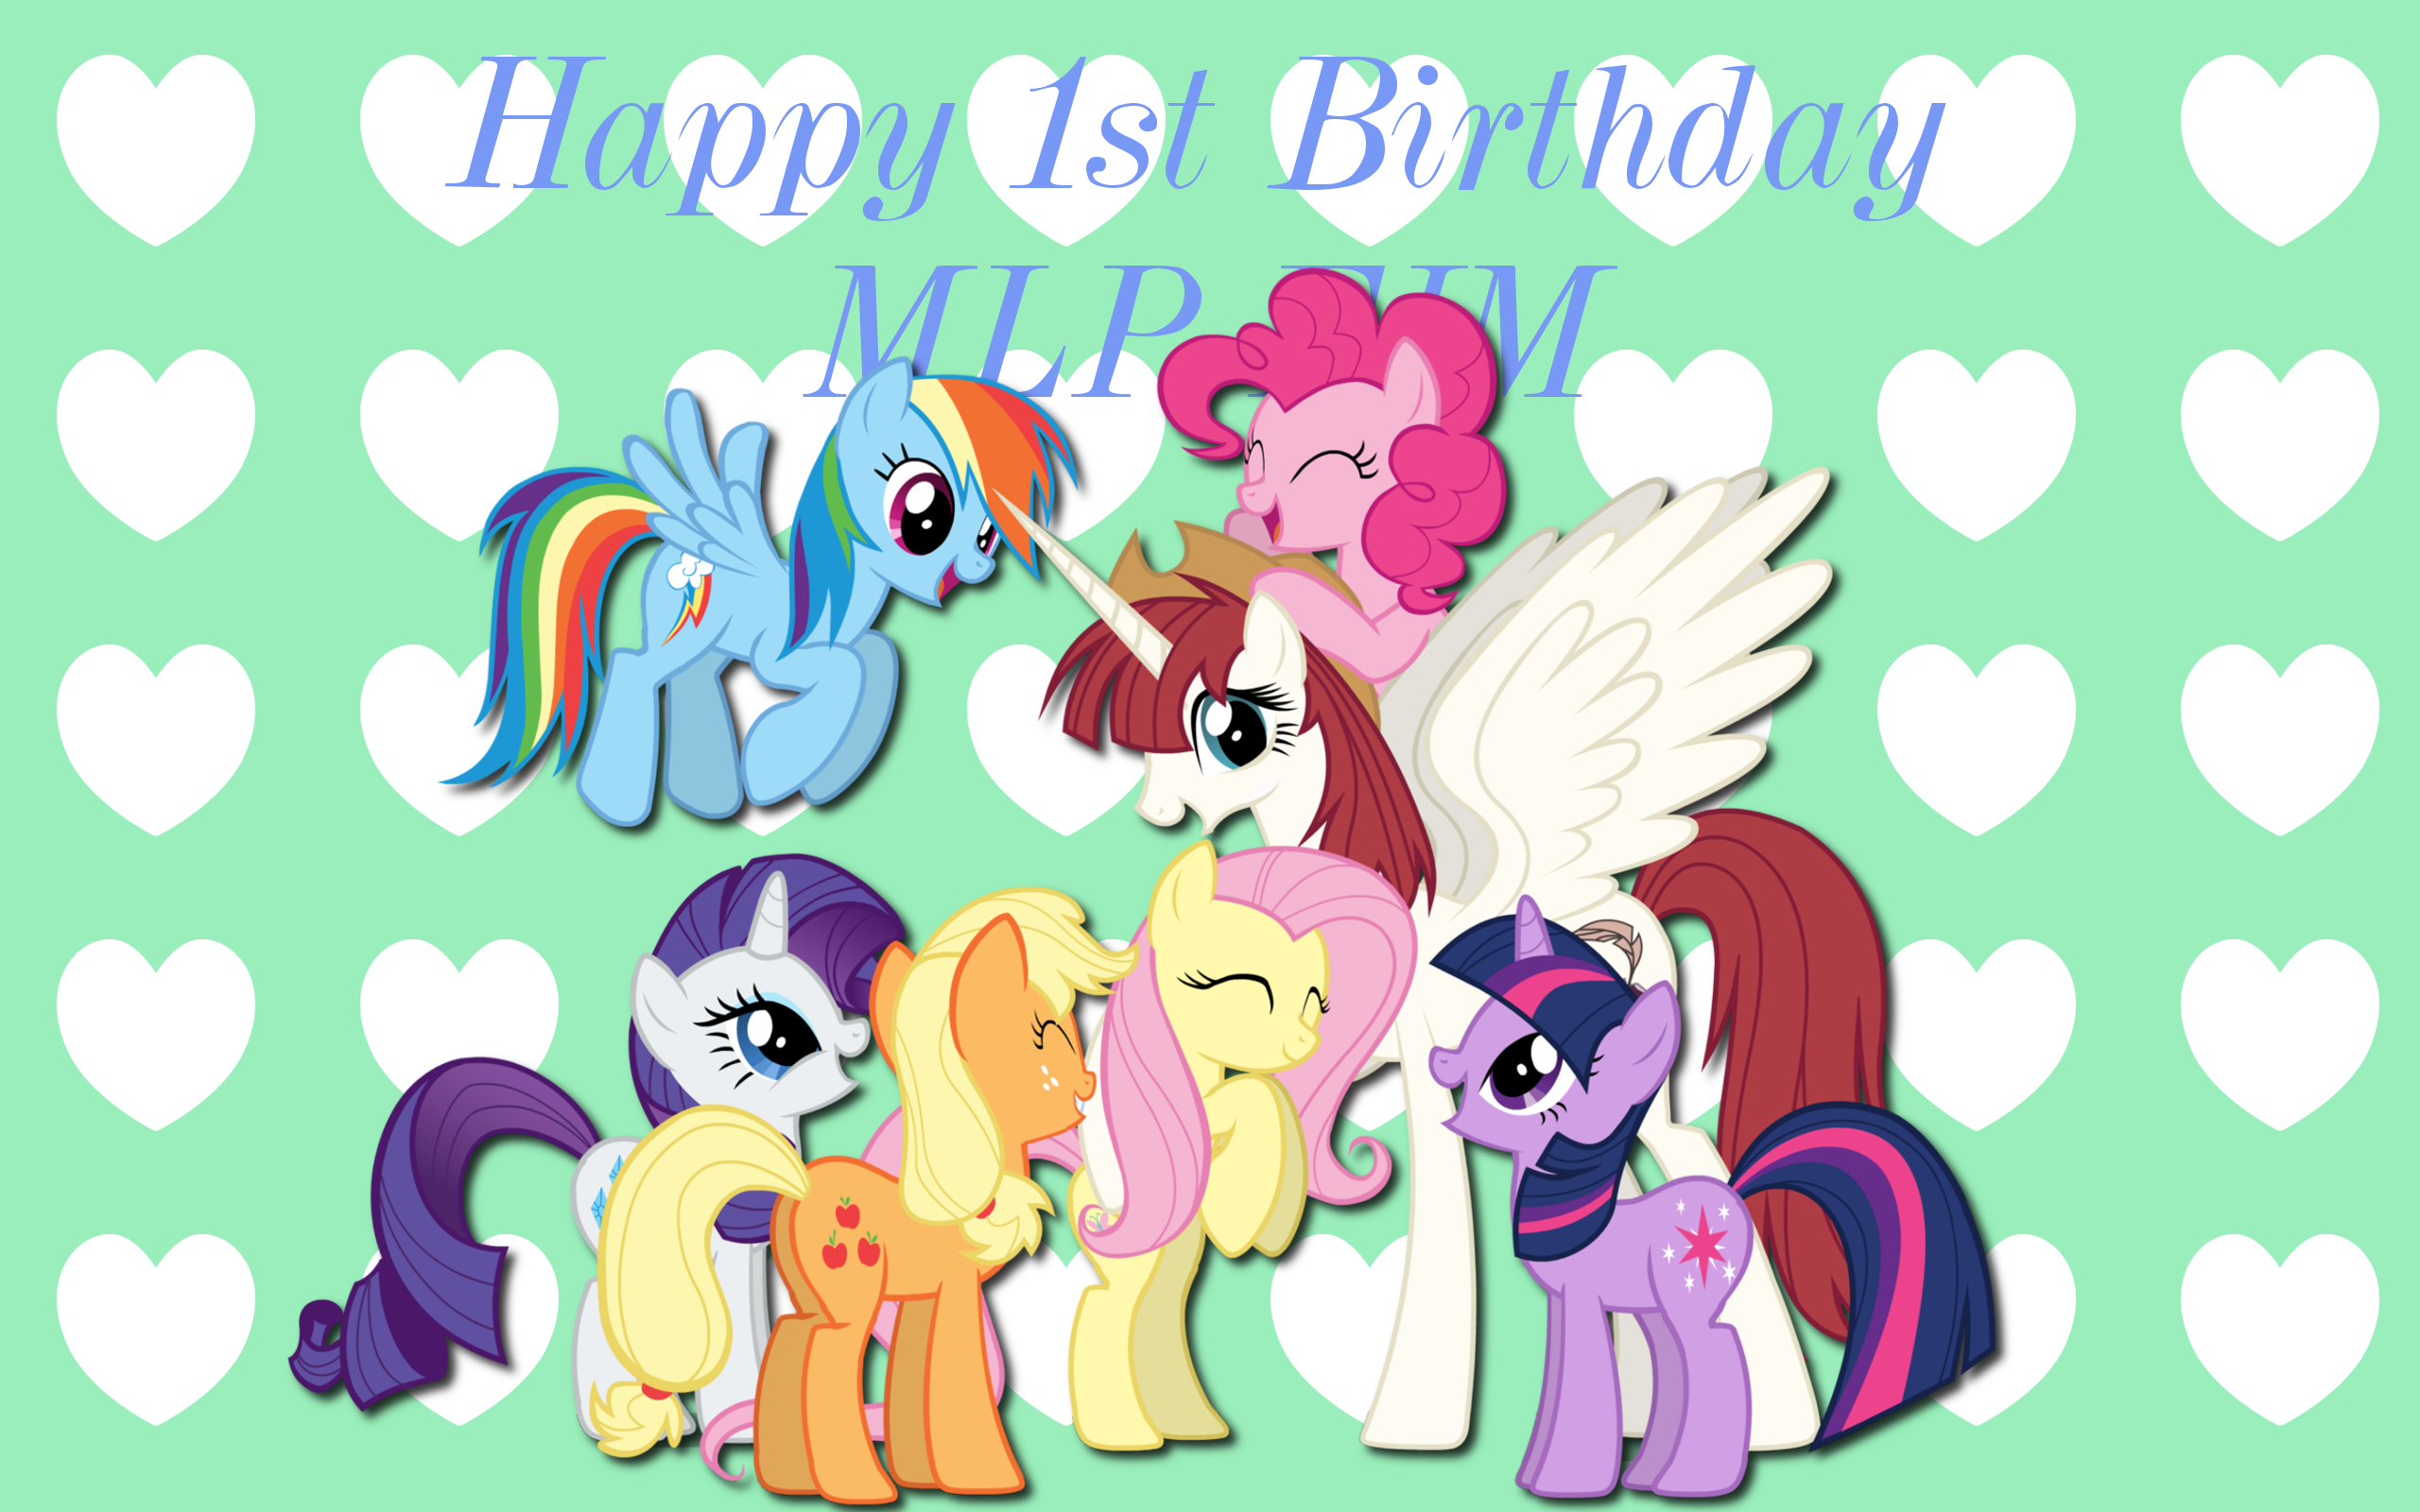 MLP Birthday Wishes WP by AliceHumanSacrifice0 and Mixermike622